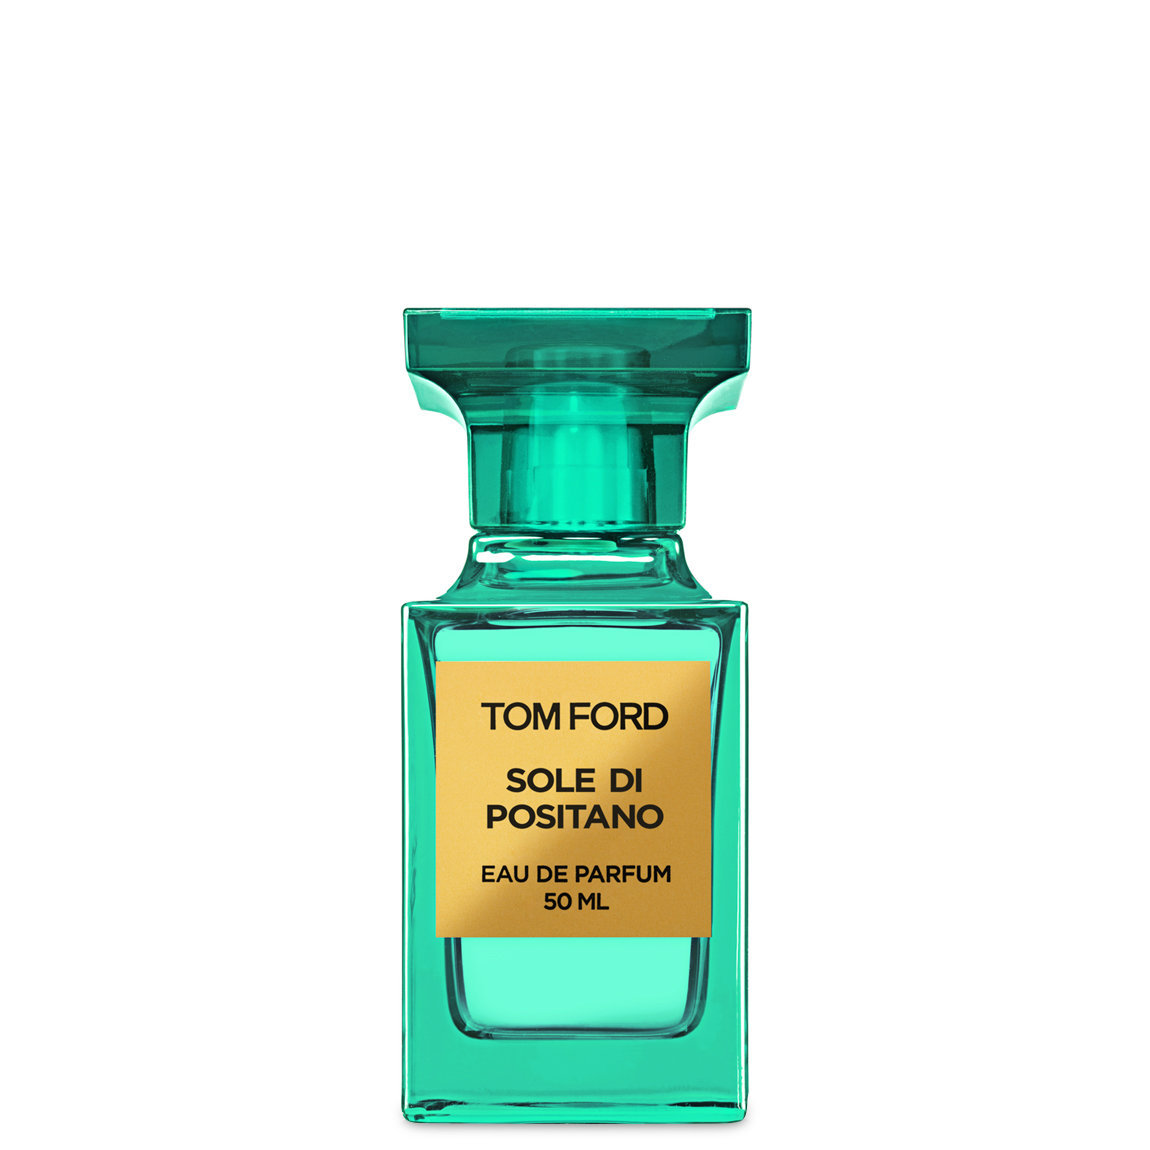 TOM FORD Sole di Positano 50 ml alternative view 1 - product swatch.